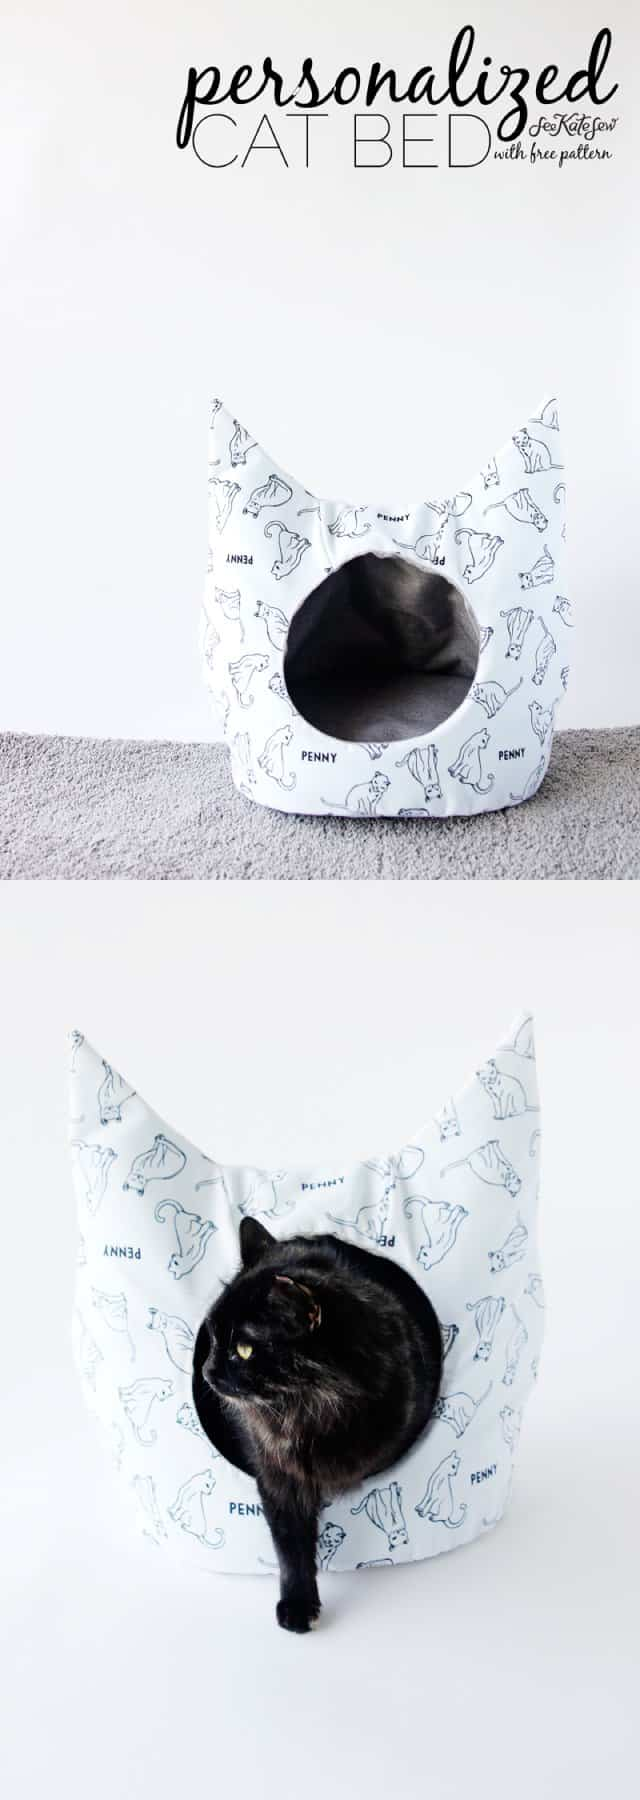 Personalized Cat Bed Joann